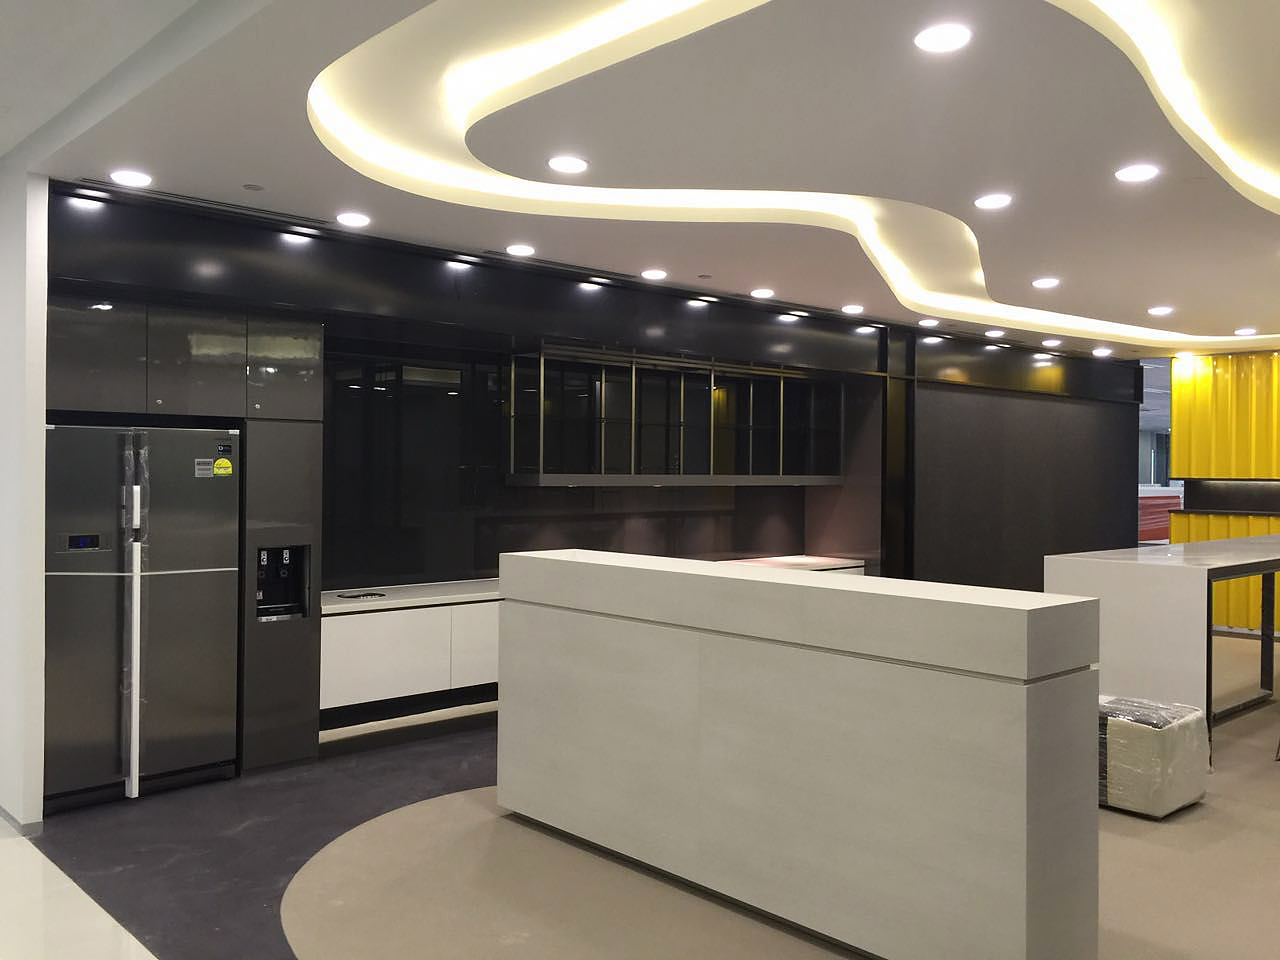 astar furnishing commercial project cabinet 1. DHL 03